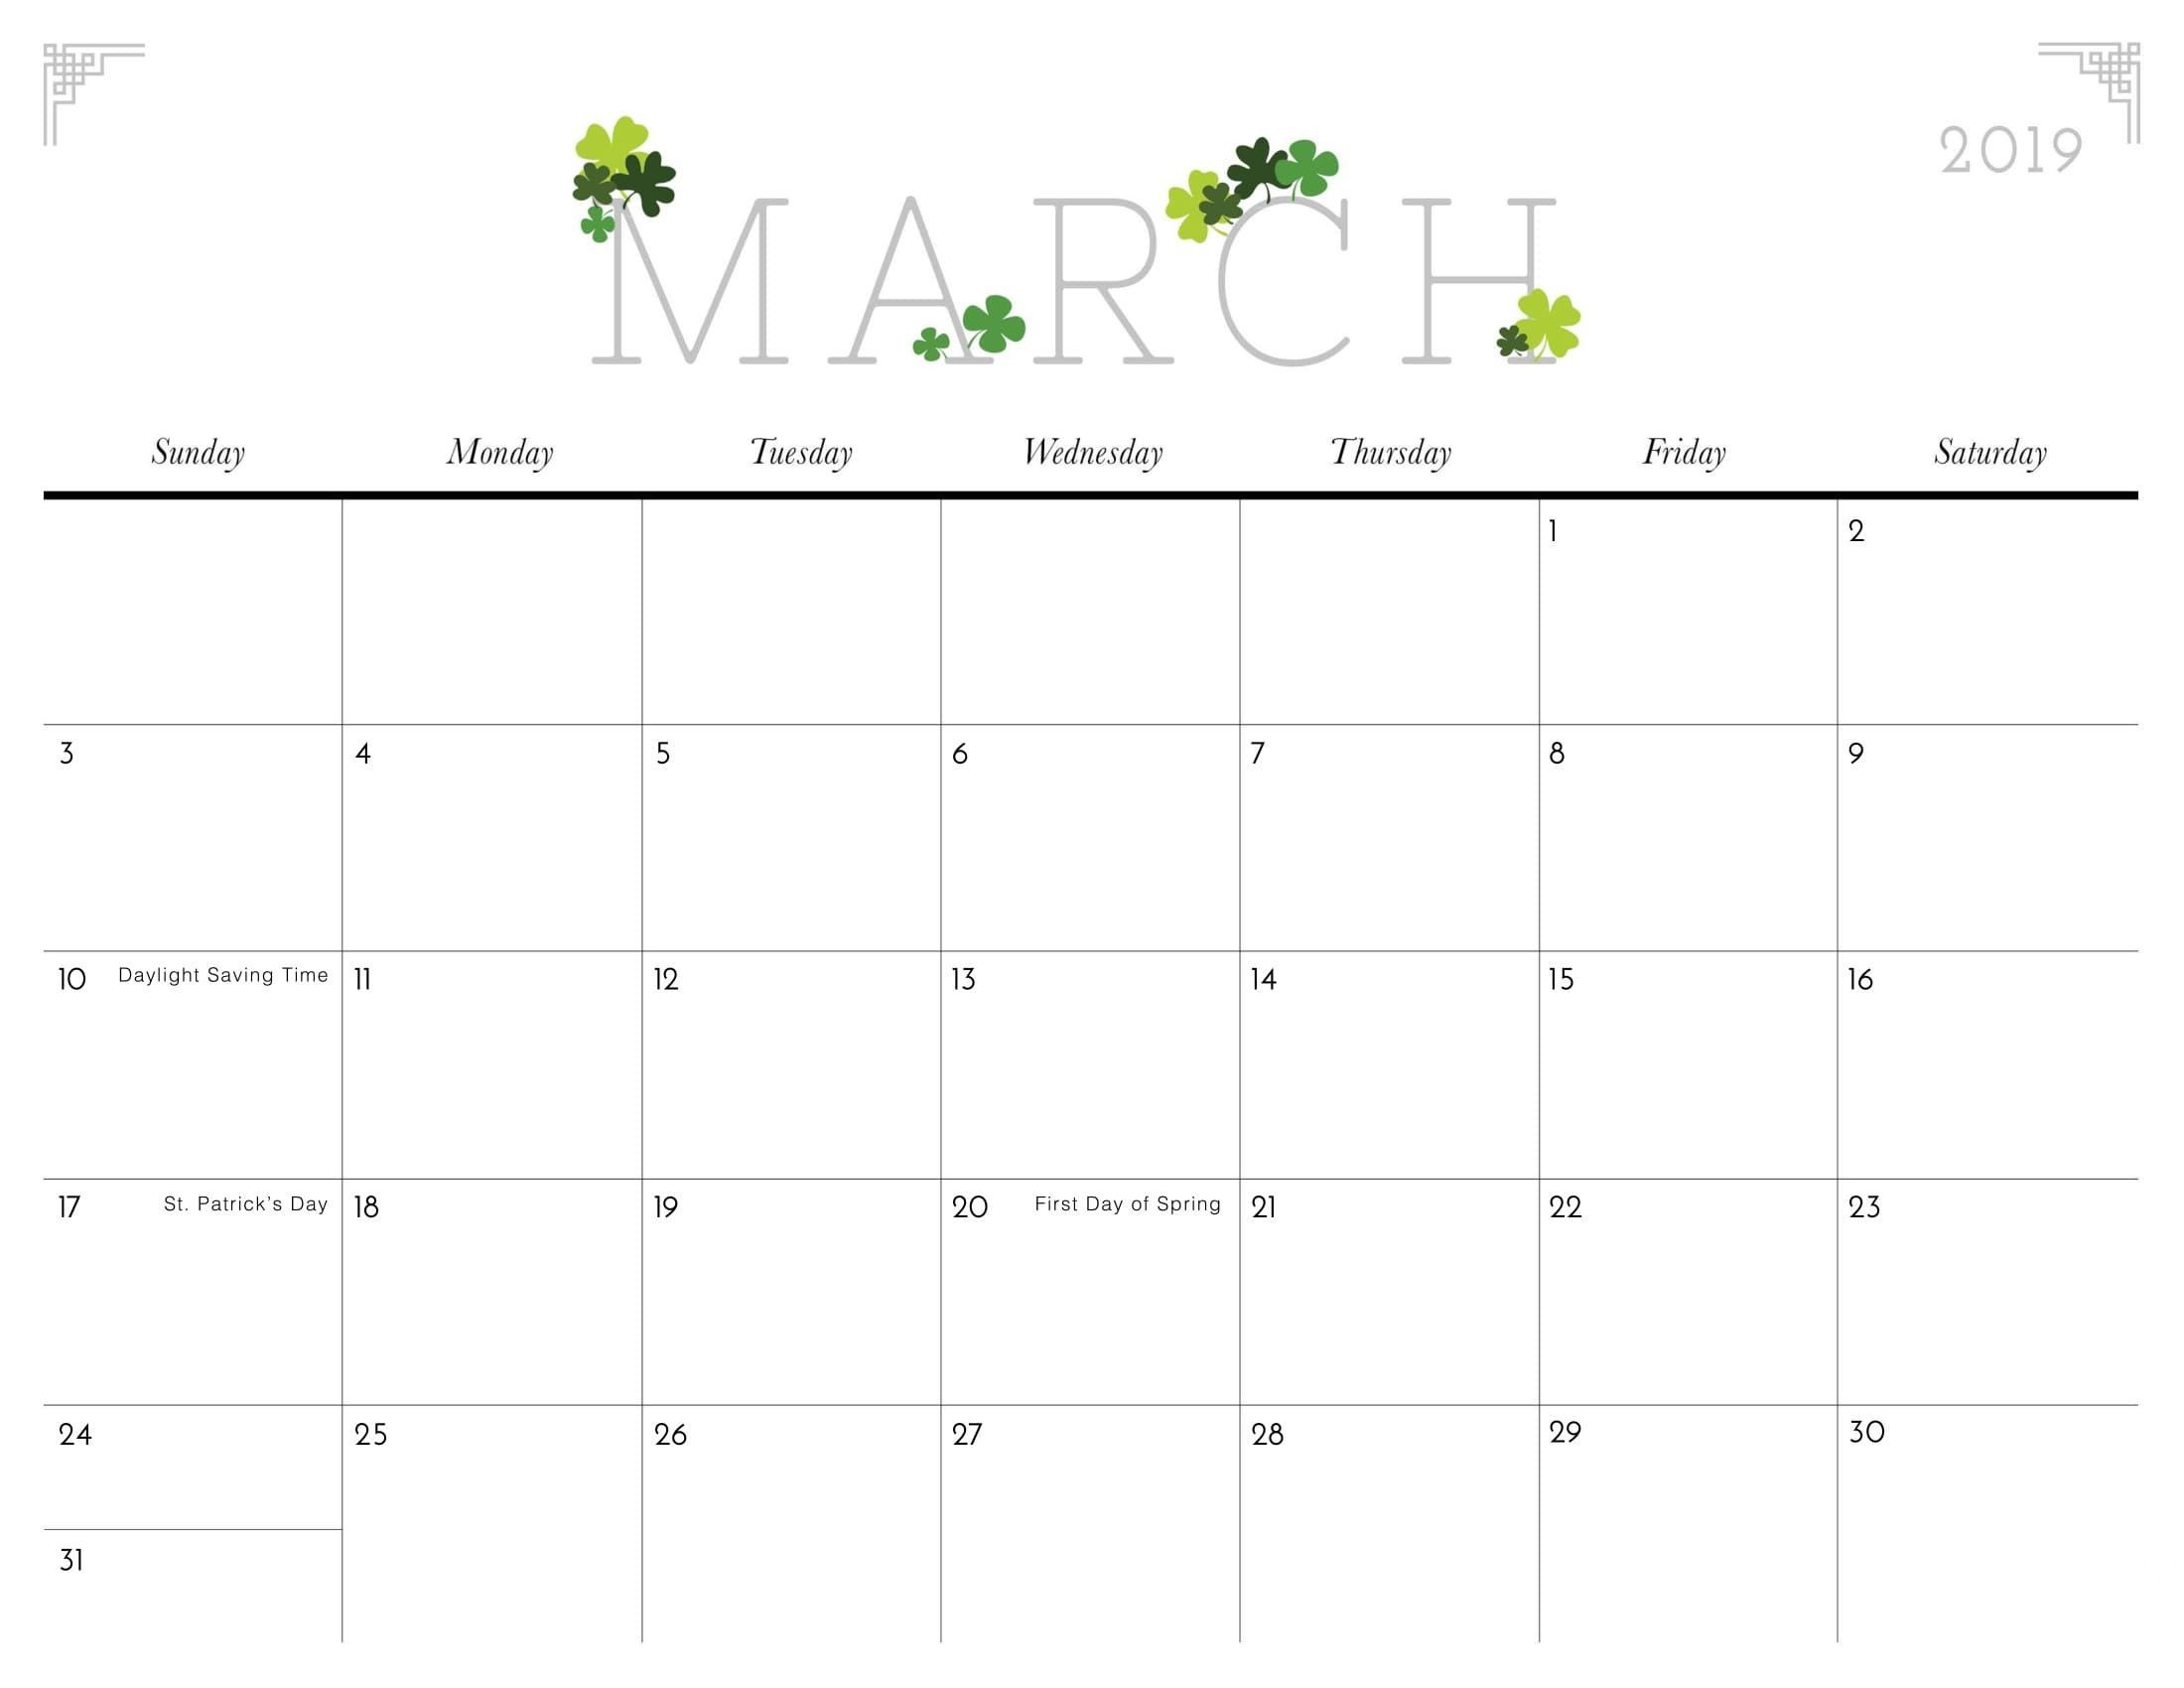 Empty Calendar March 2019 Más Caliente Cute March 2019 Calendar Template Of Empty Calendar March 2019 Más Recientemente Liberado March 2019 Calendar Wallpaper Desktop March Calendar Calenda2019